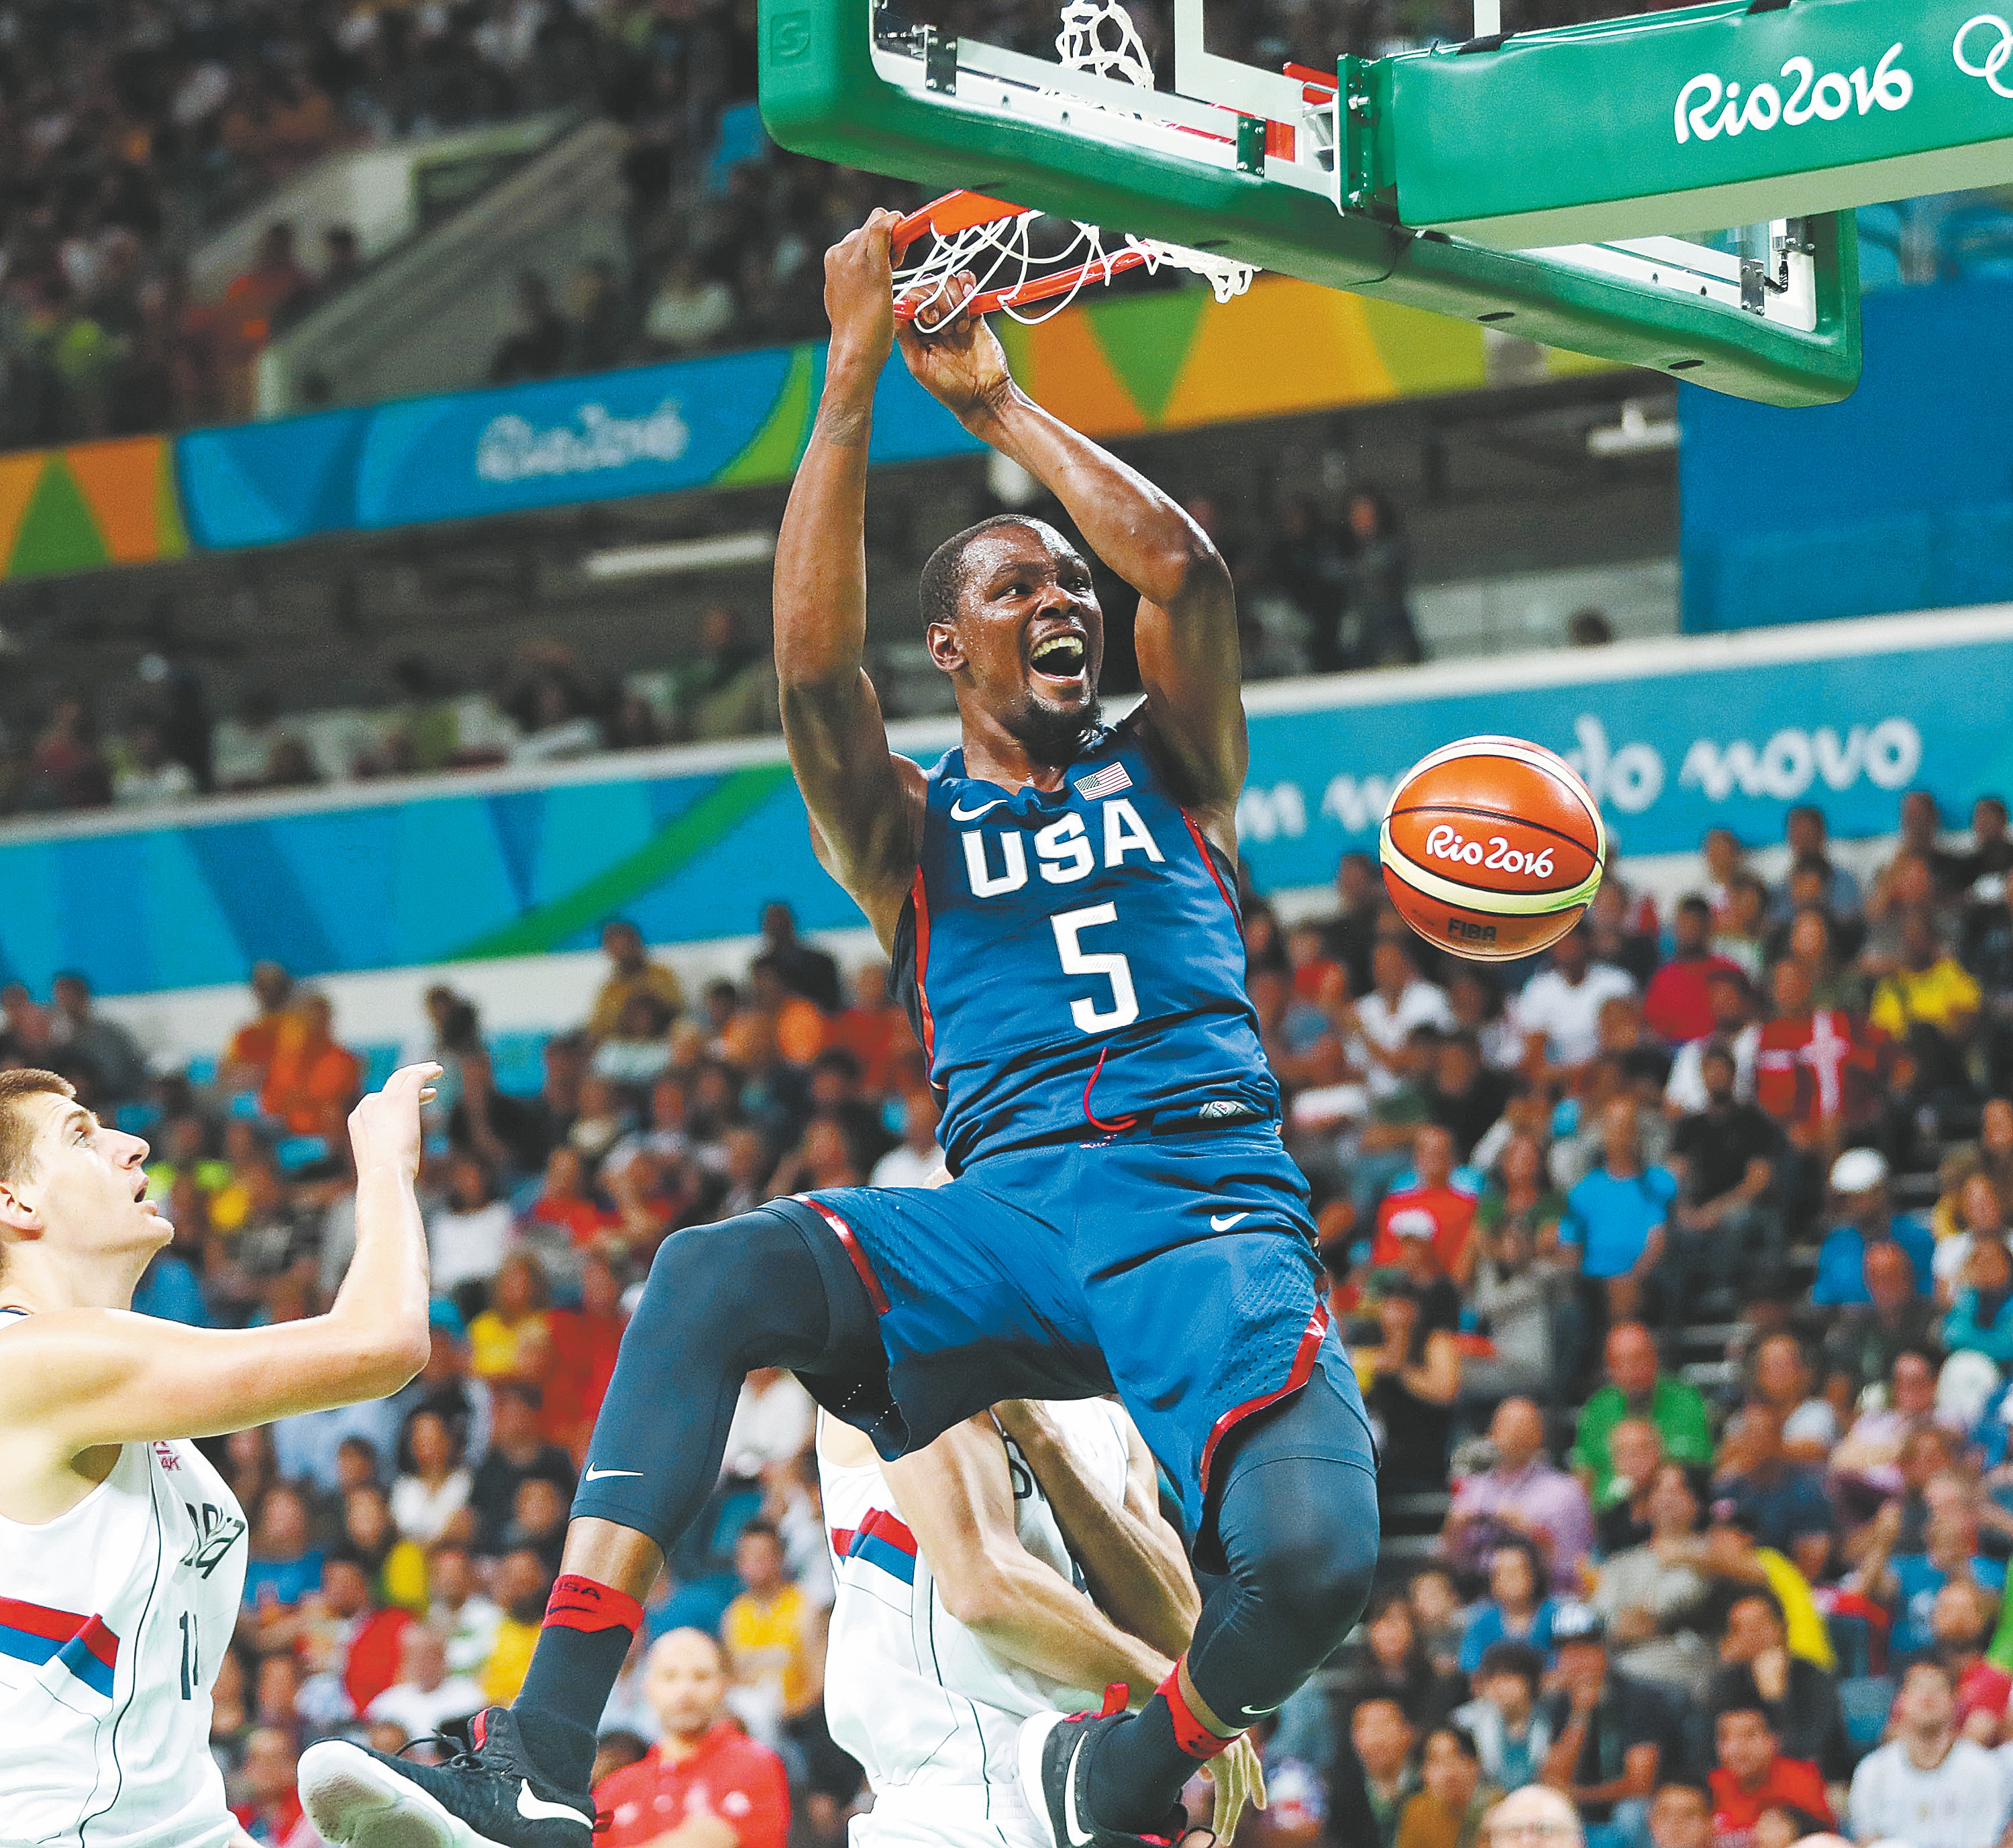 Kevin Durant took control of the gold-medal game against Serbia and scored 30 points in leading the United States to a one-sided victory on the final day of the Rio Games.